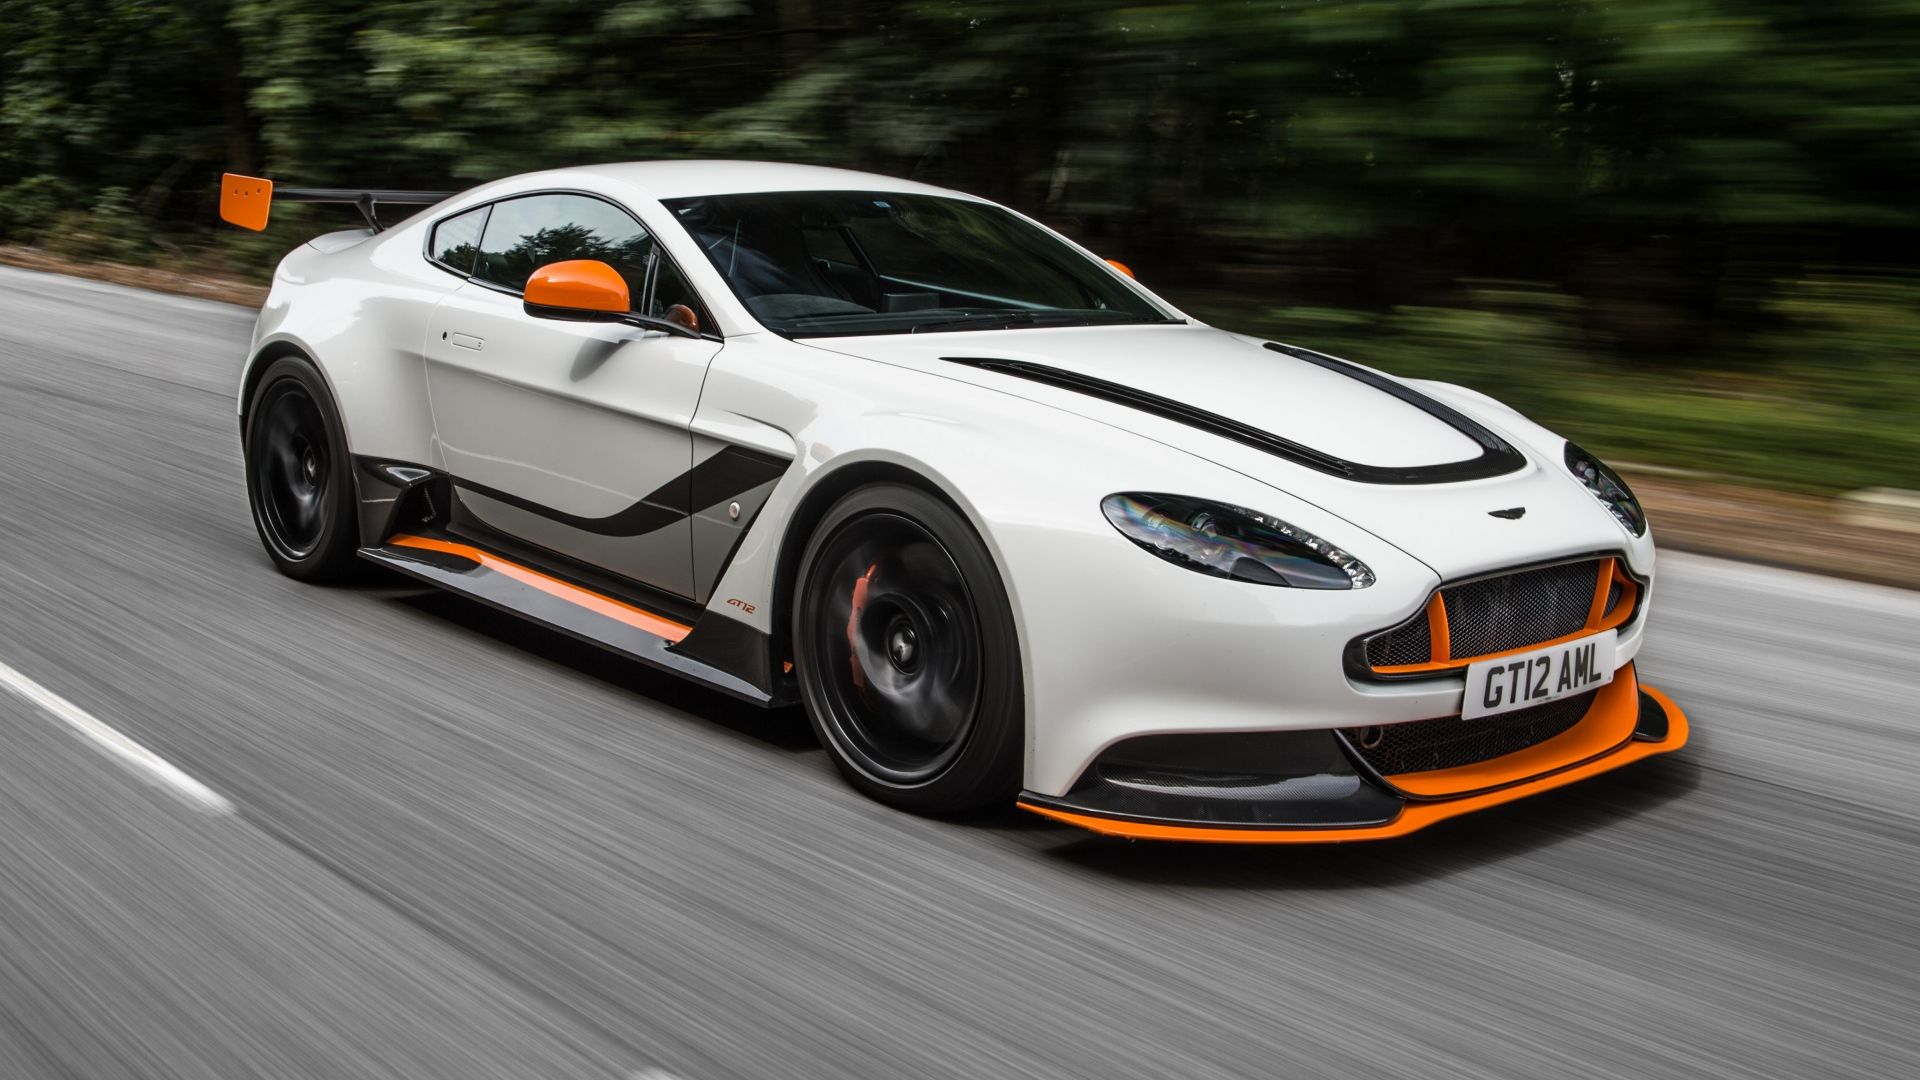 Aston Martin, Sports Car Wallpapers And Backgrounds, Hd Car Wallpapers